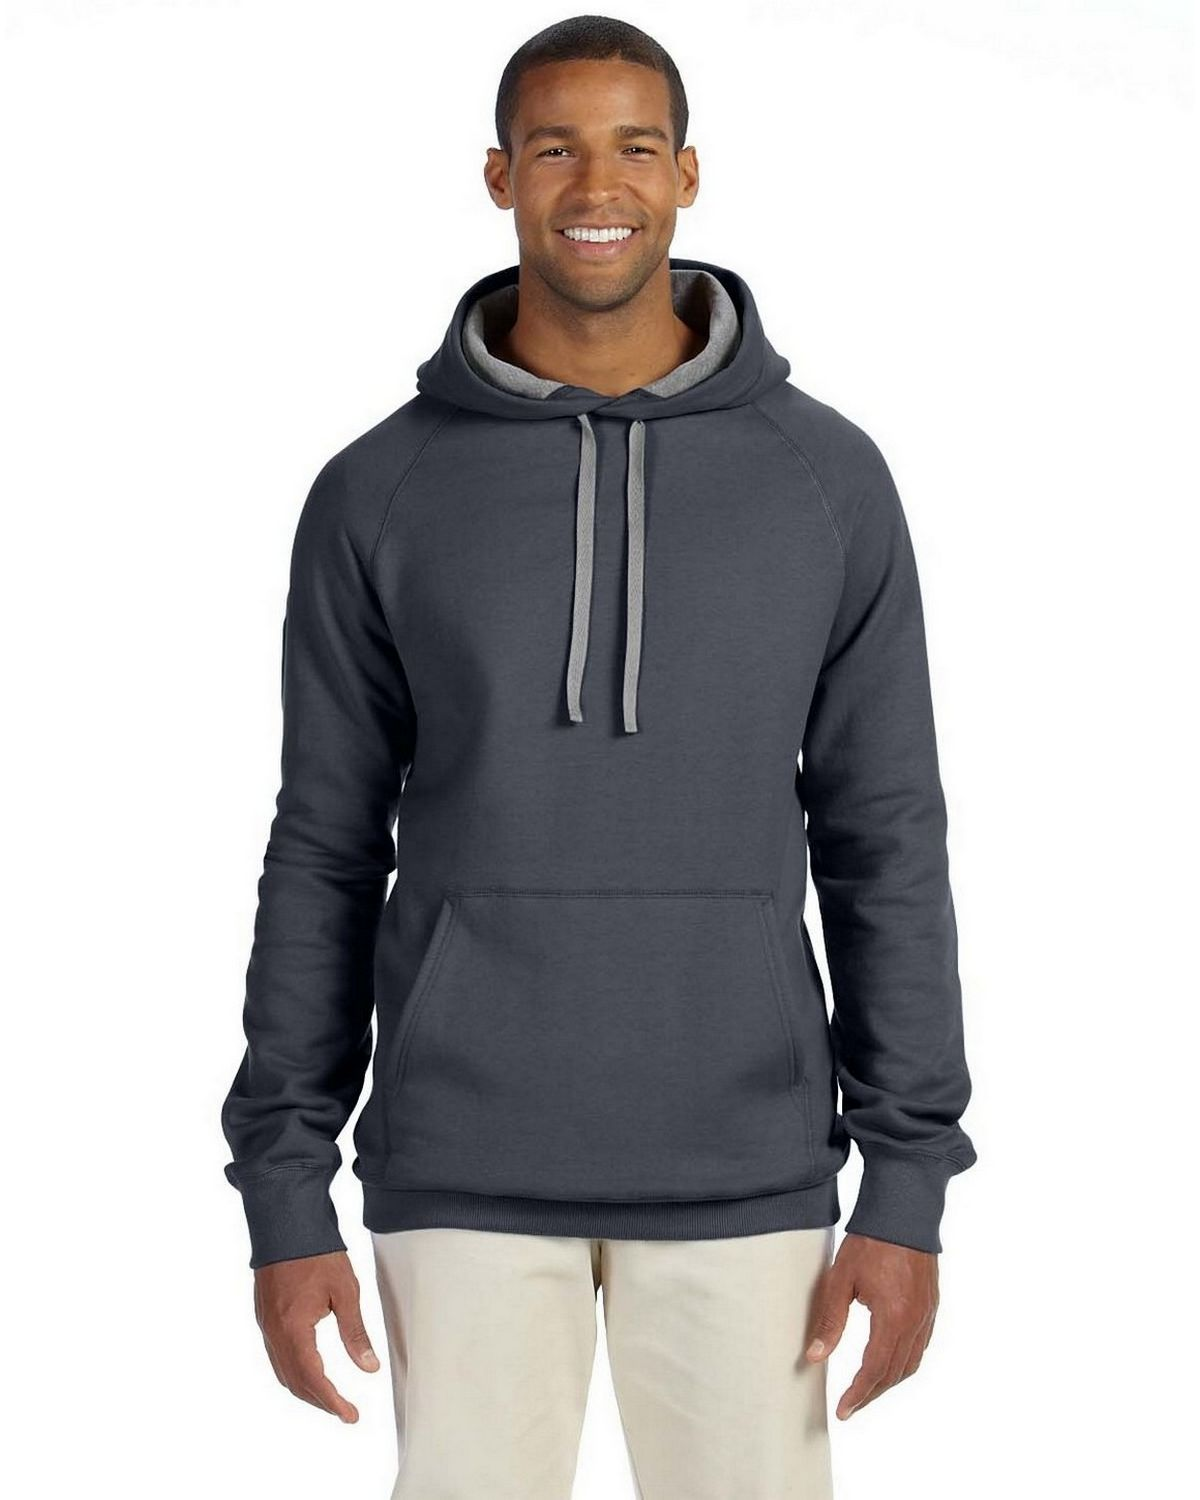 Hanes N270 Nano Pullover Hoodie Sweatshirt - Charcoal Heather - XL N270